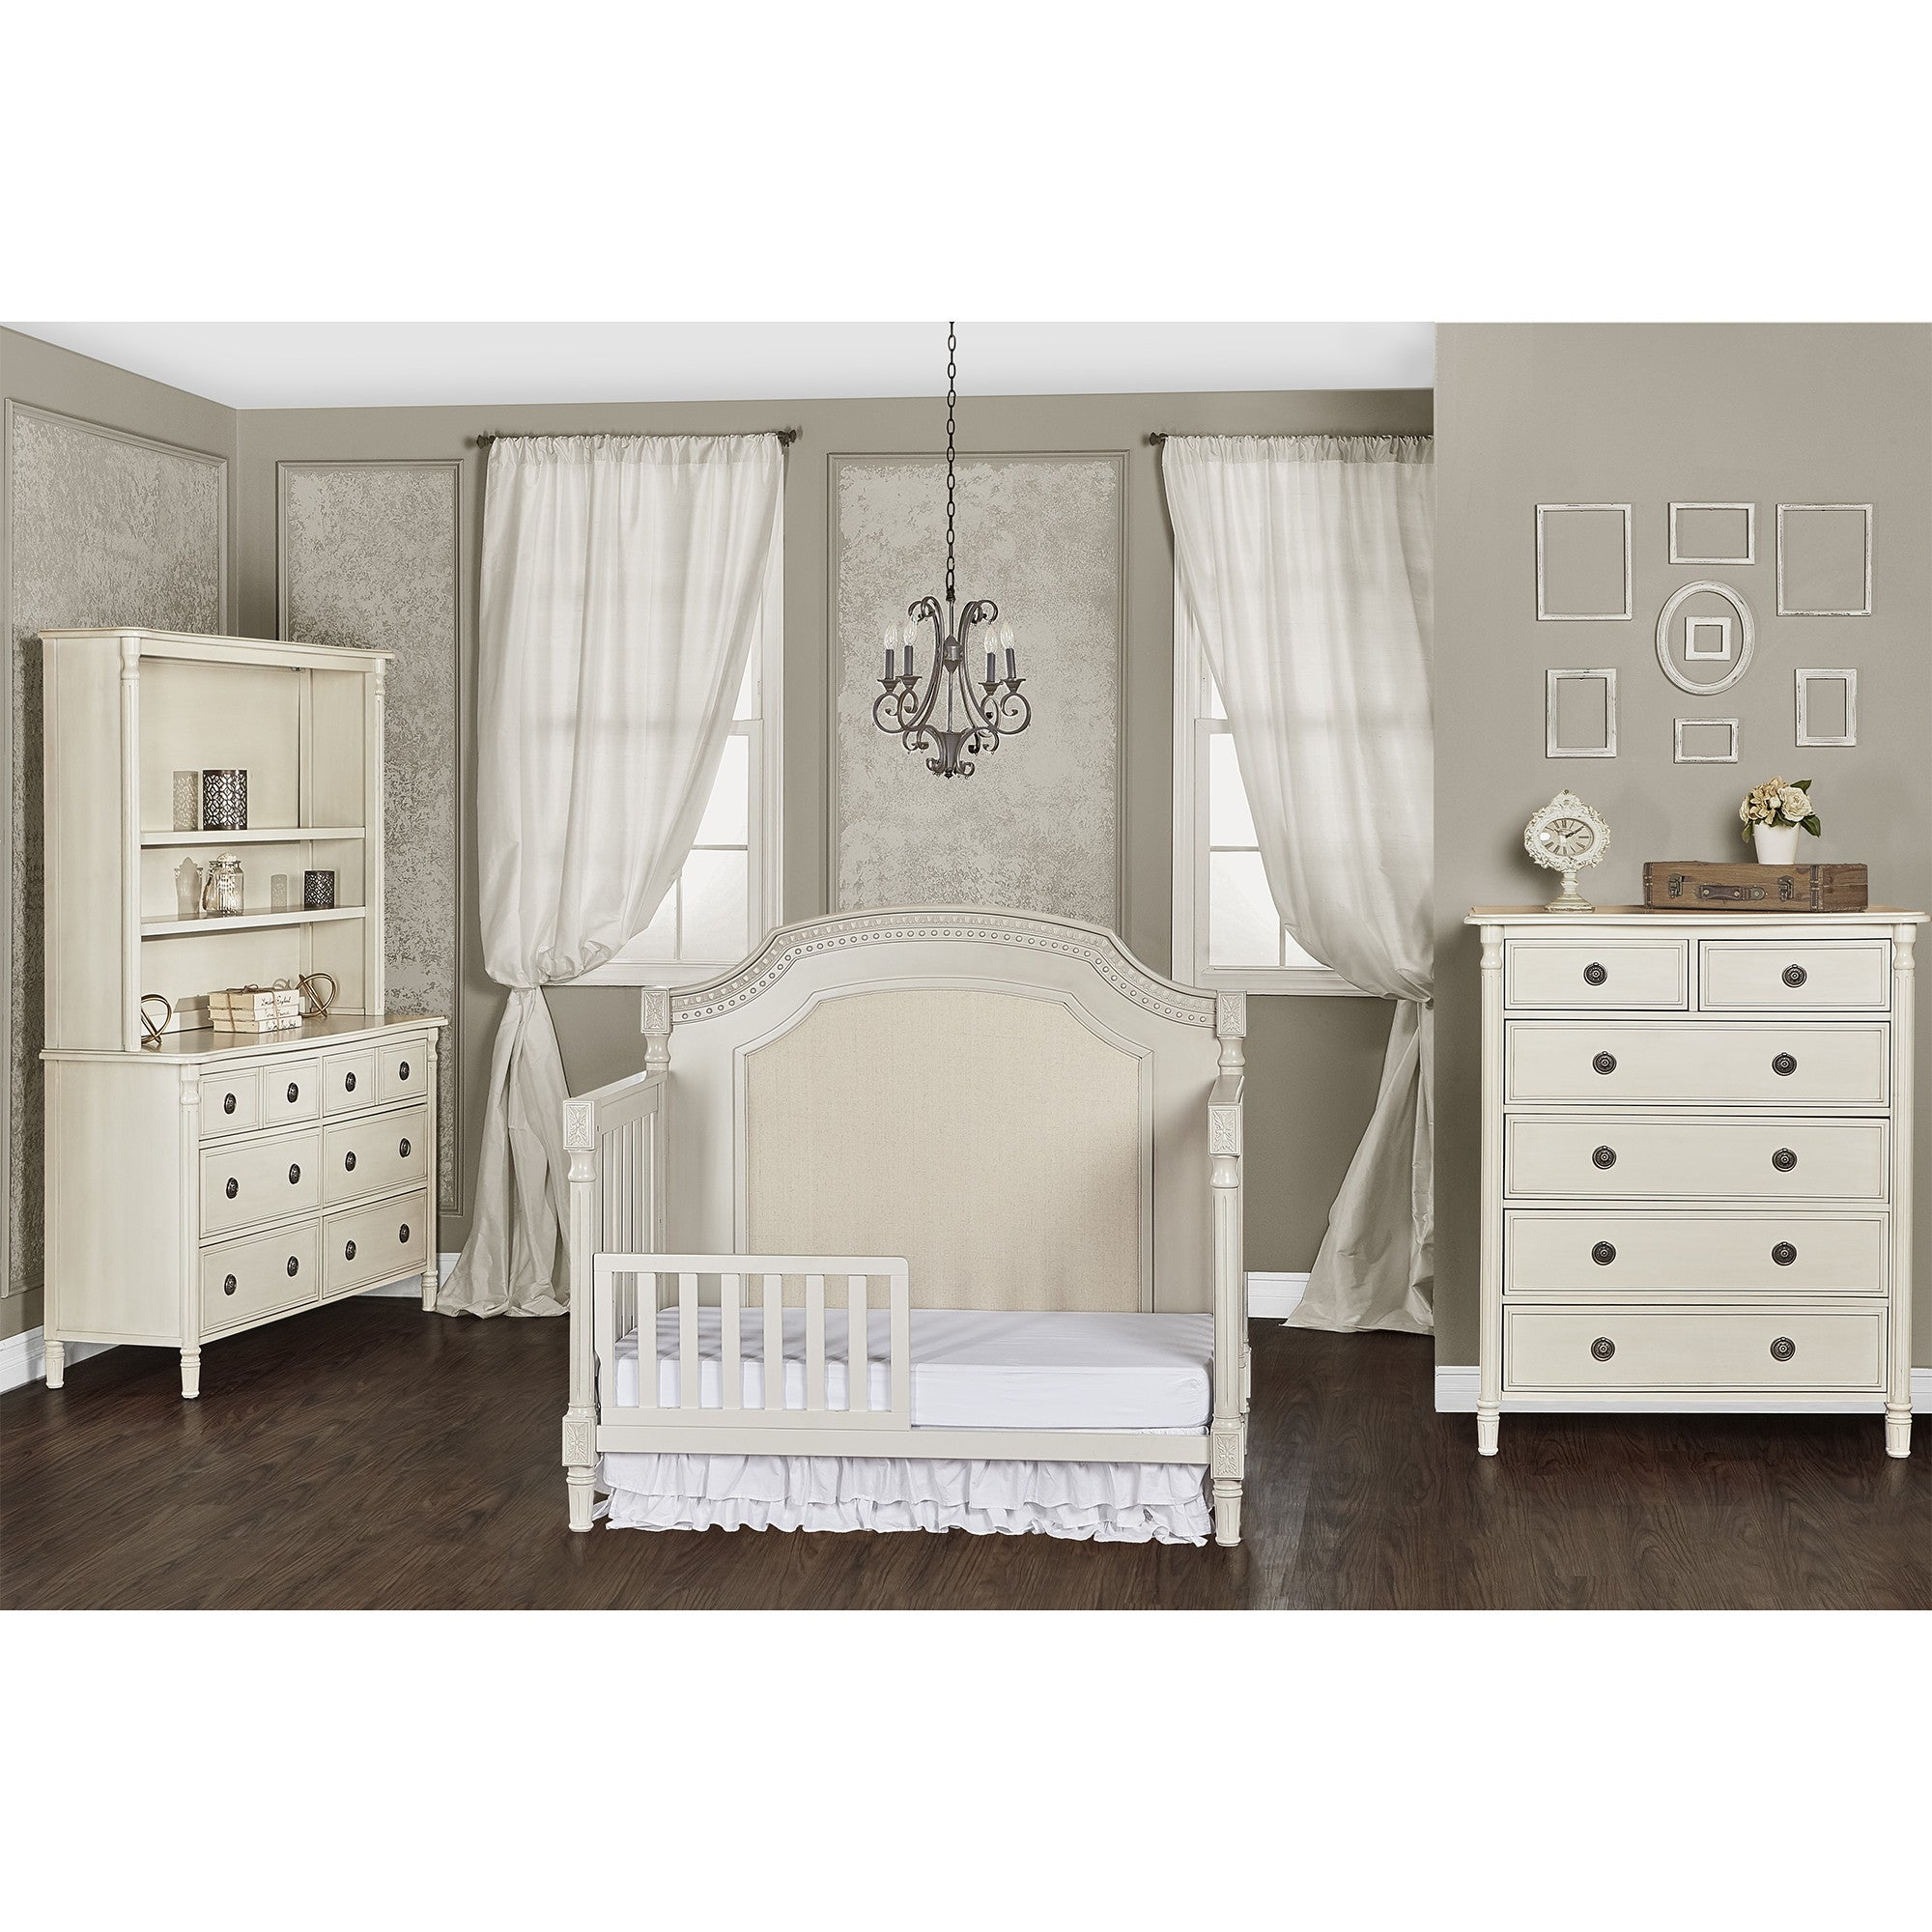 AFG Baby Lorie 4 in 1 Convertible Crib with Toddler Rail Aiden